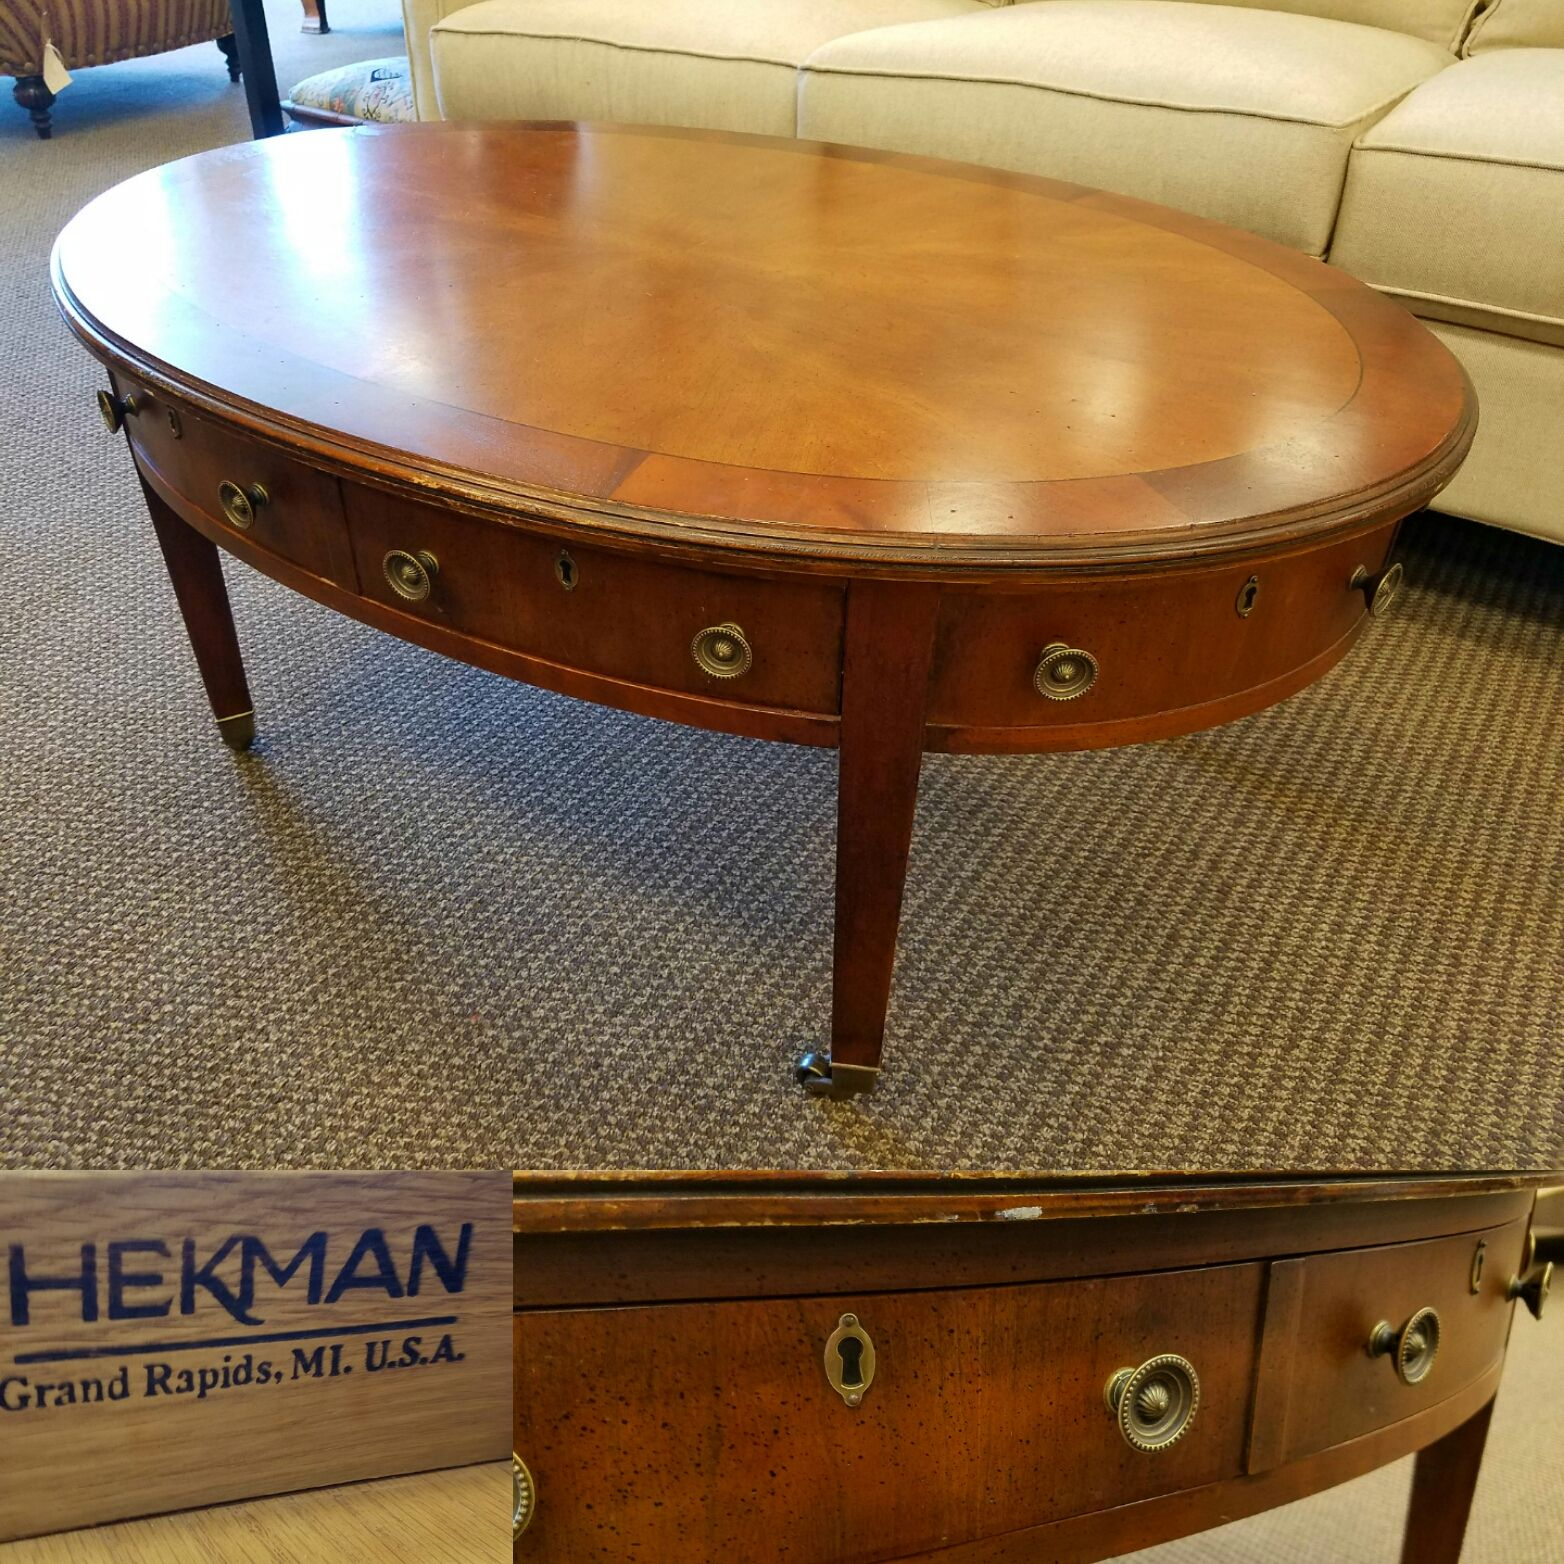 This Heckman oval cocktail table is $129.